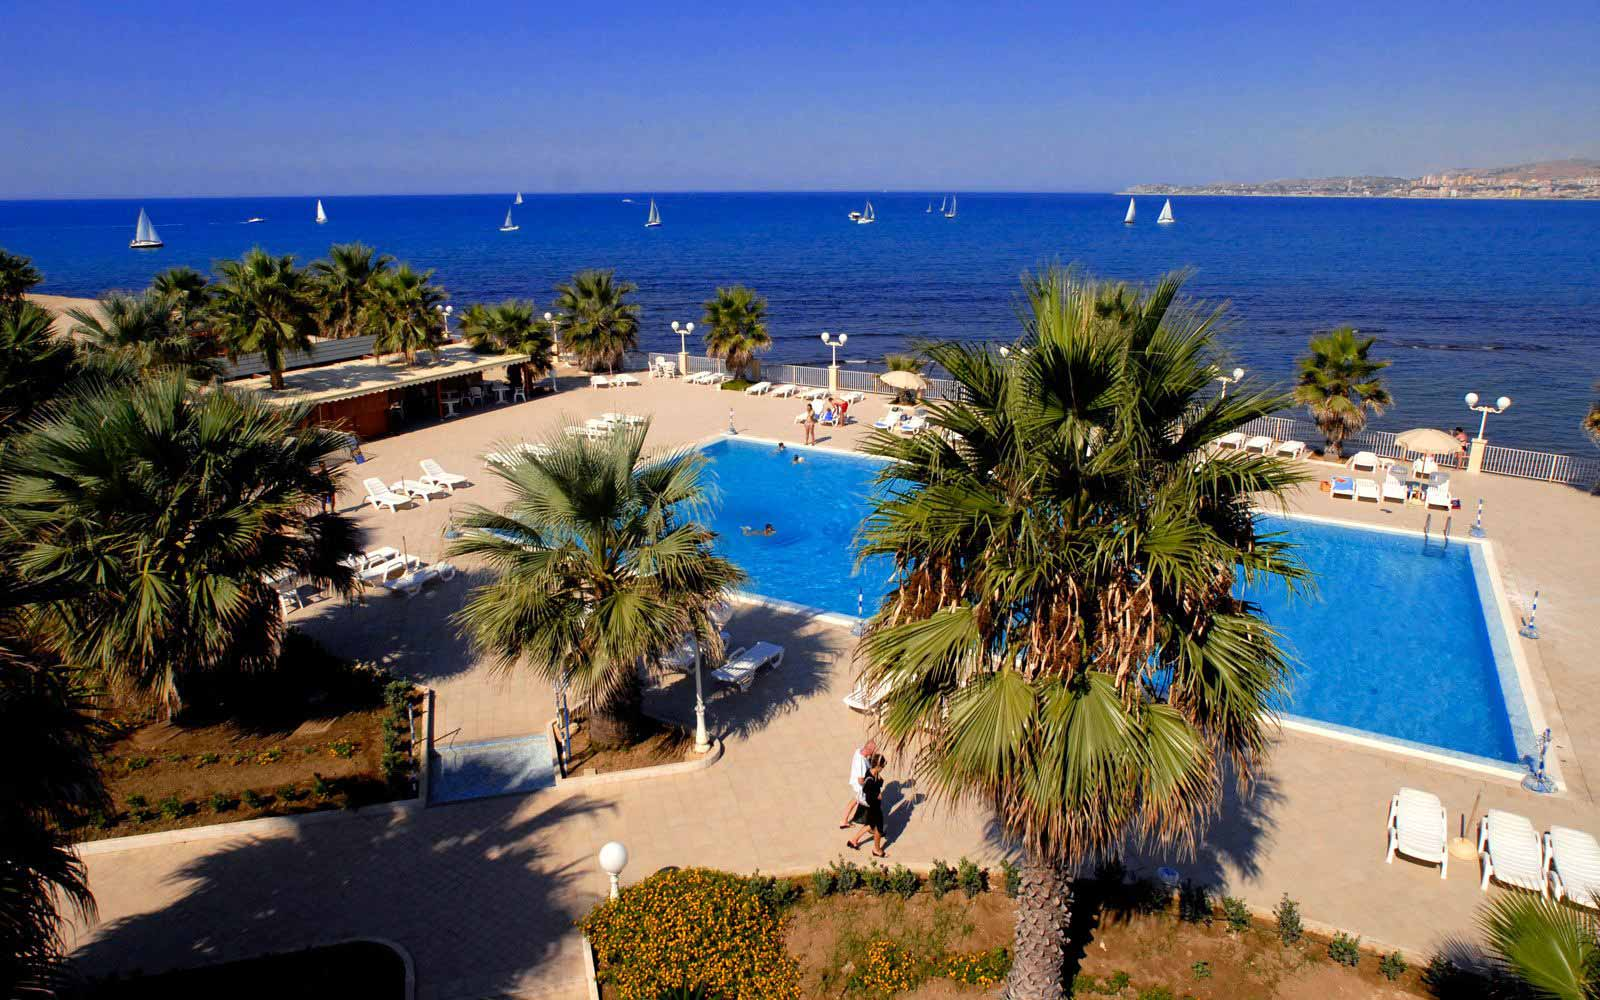 Panoramic view over the pool at Dioscuri Bay Palace